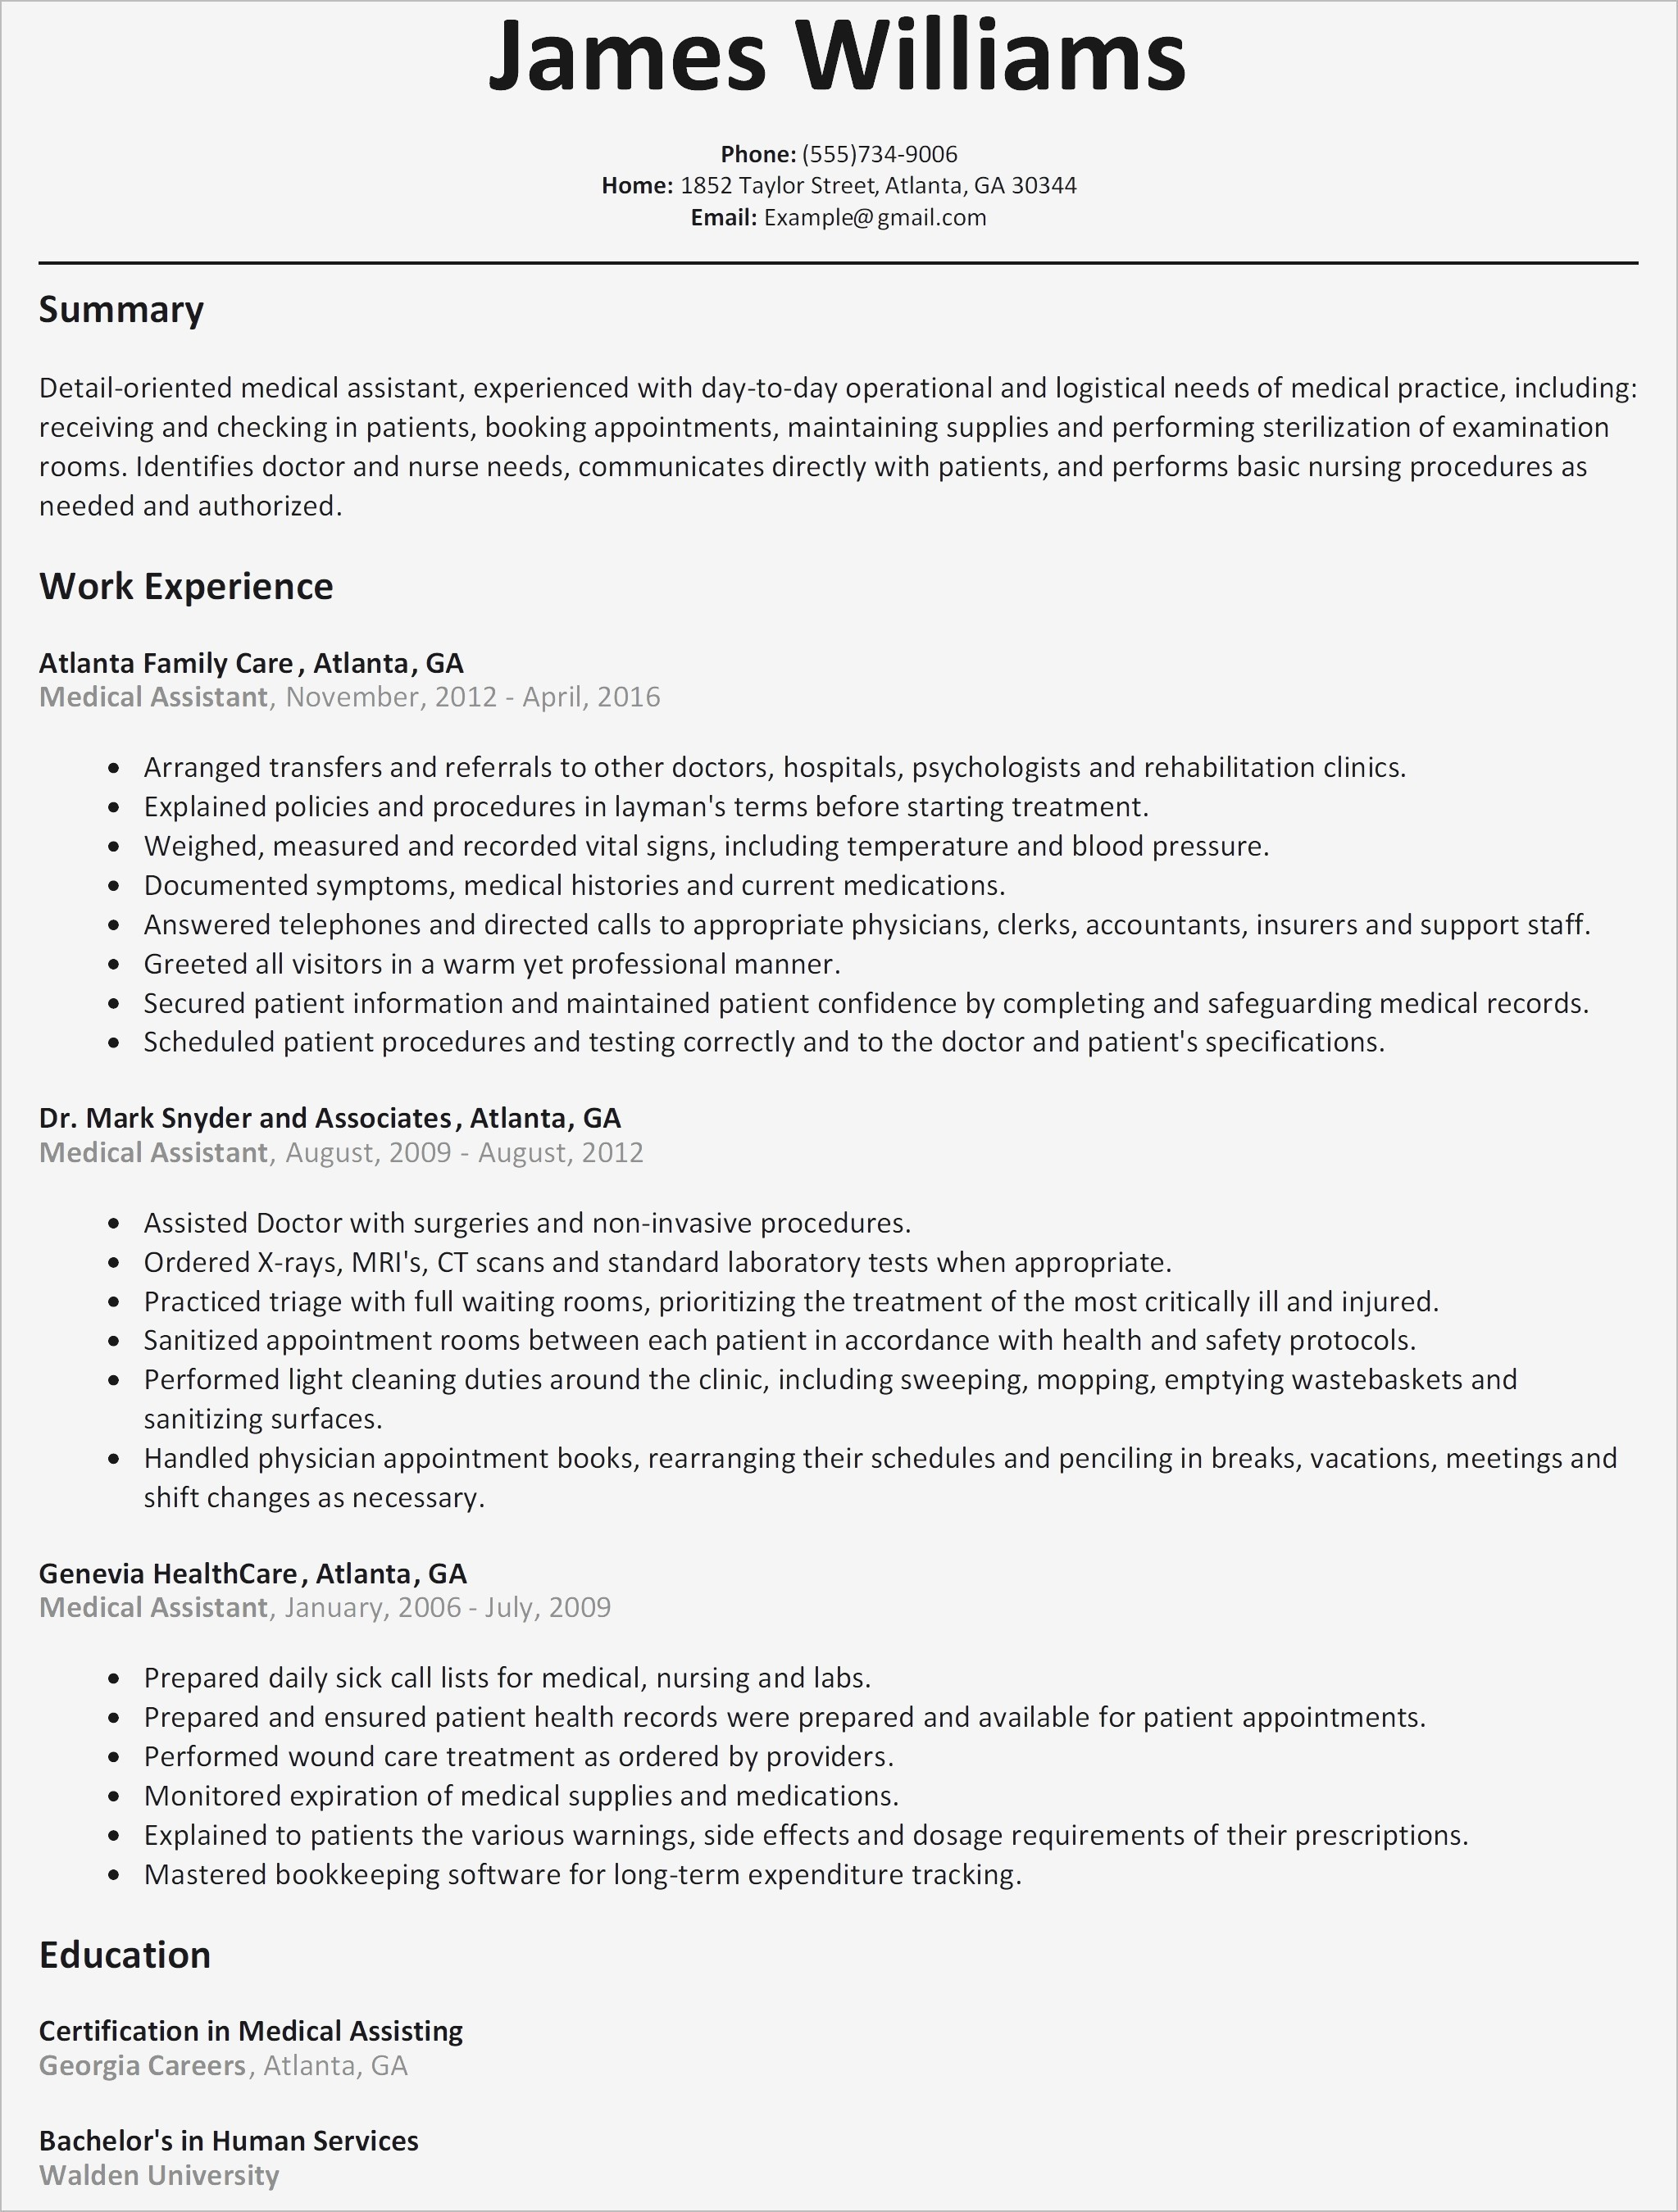 resume for construction worker Collection-Lovely New Nurse Resume Awesome Nurse Resume 0d Wallpapers 42 general labor resume template best resume construction 16-t